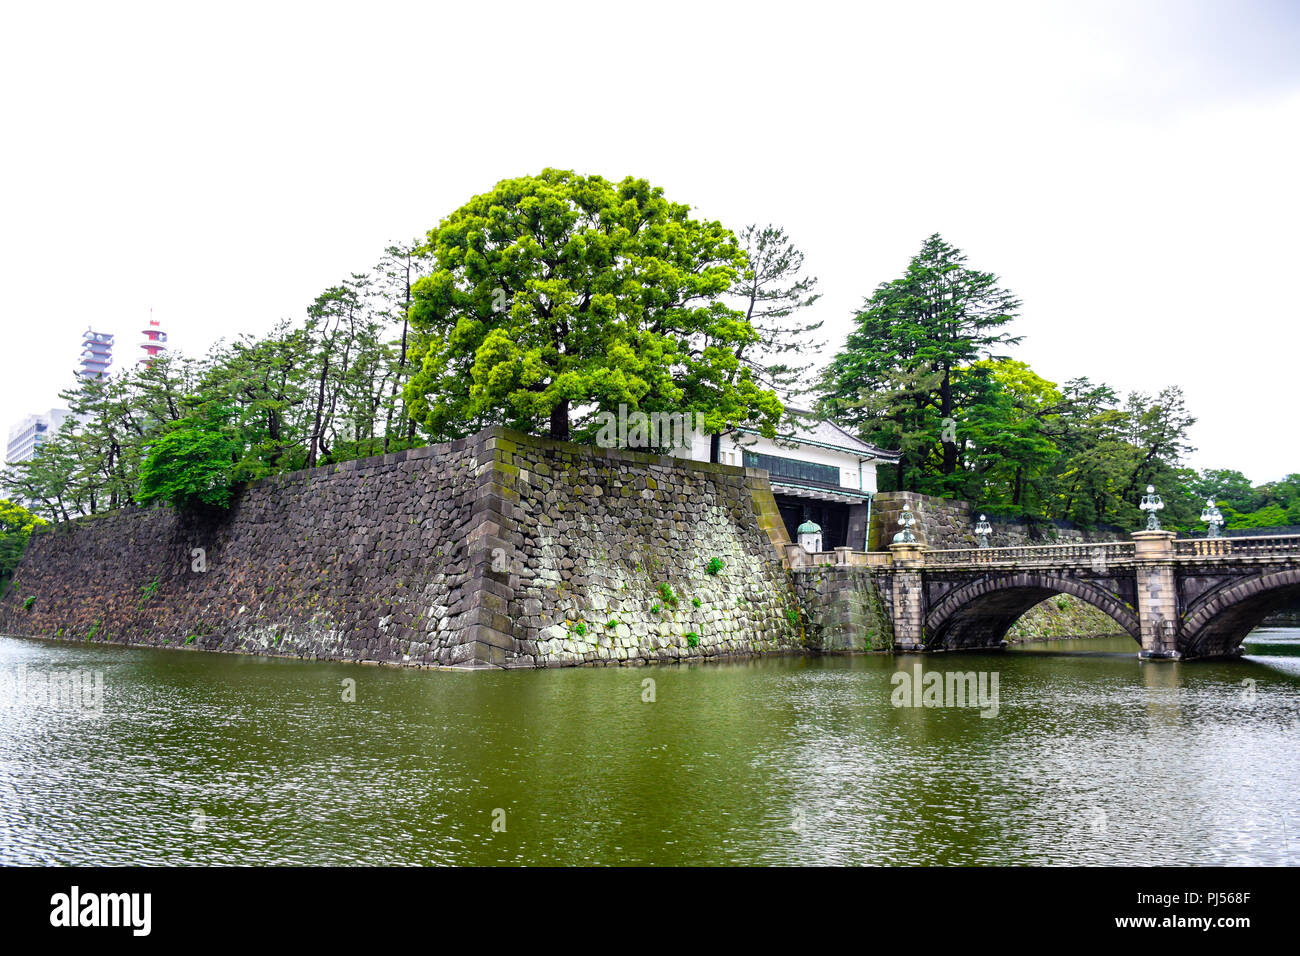 Beautiful pond and garden around the Imperial Palace in Tokyo, Japan - Stock Image